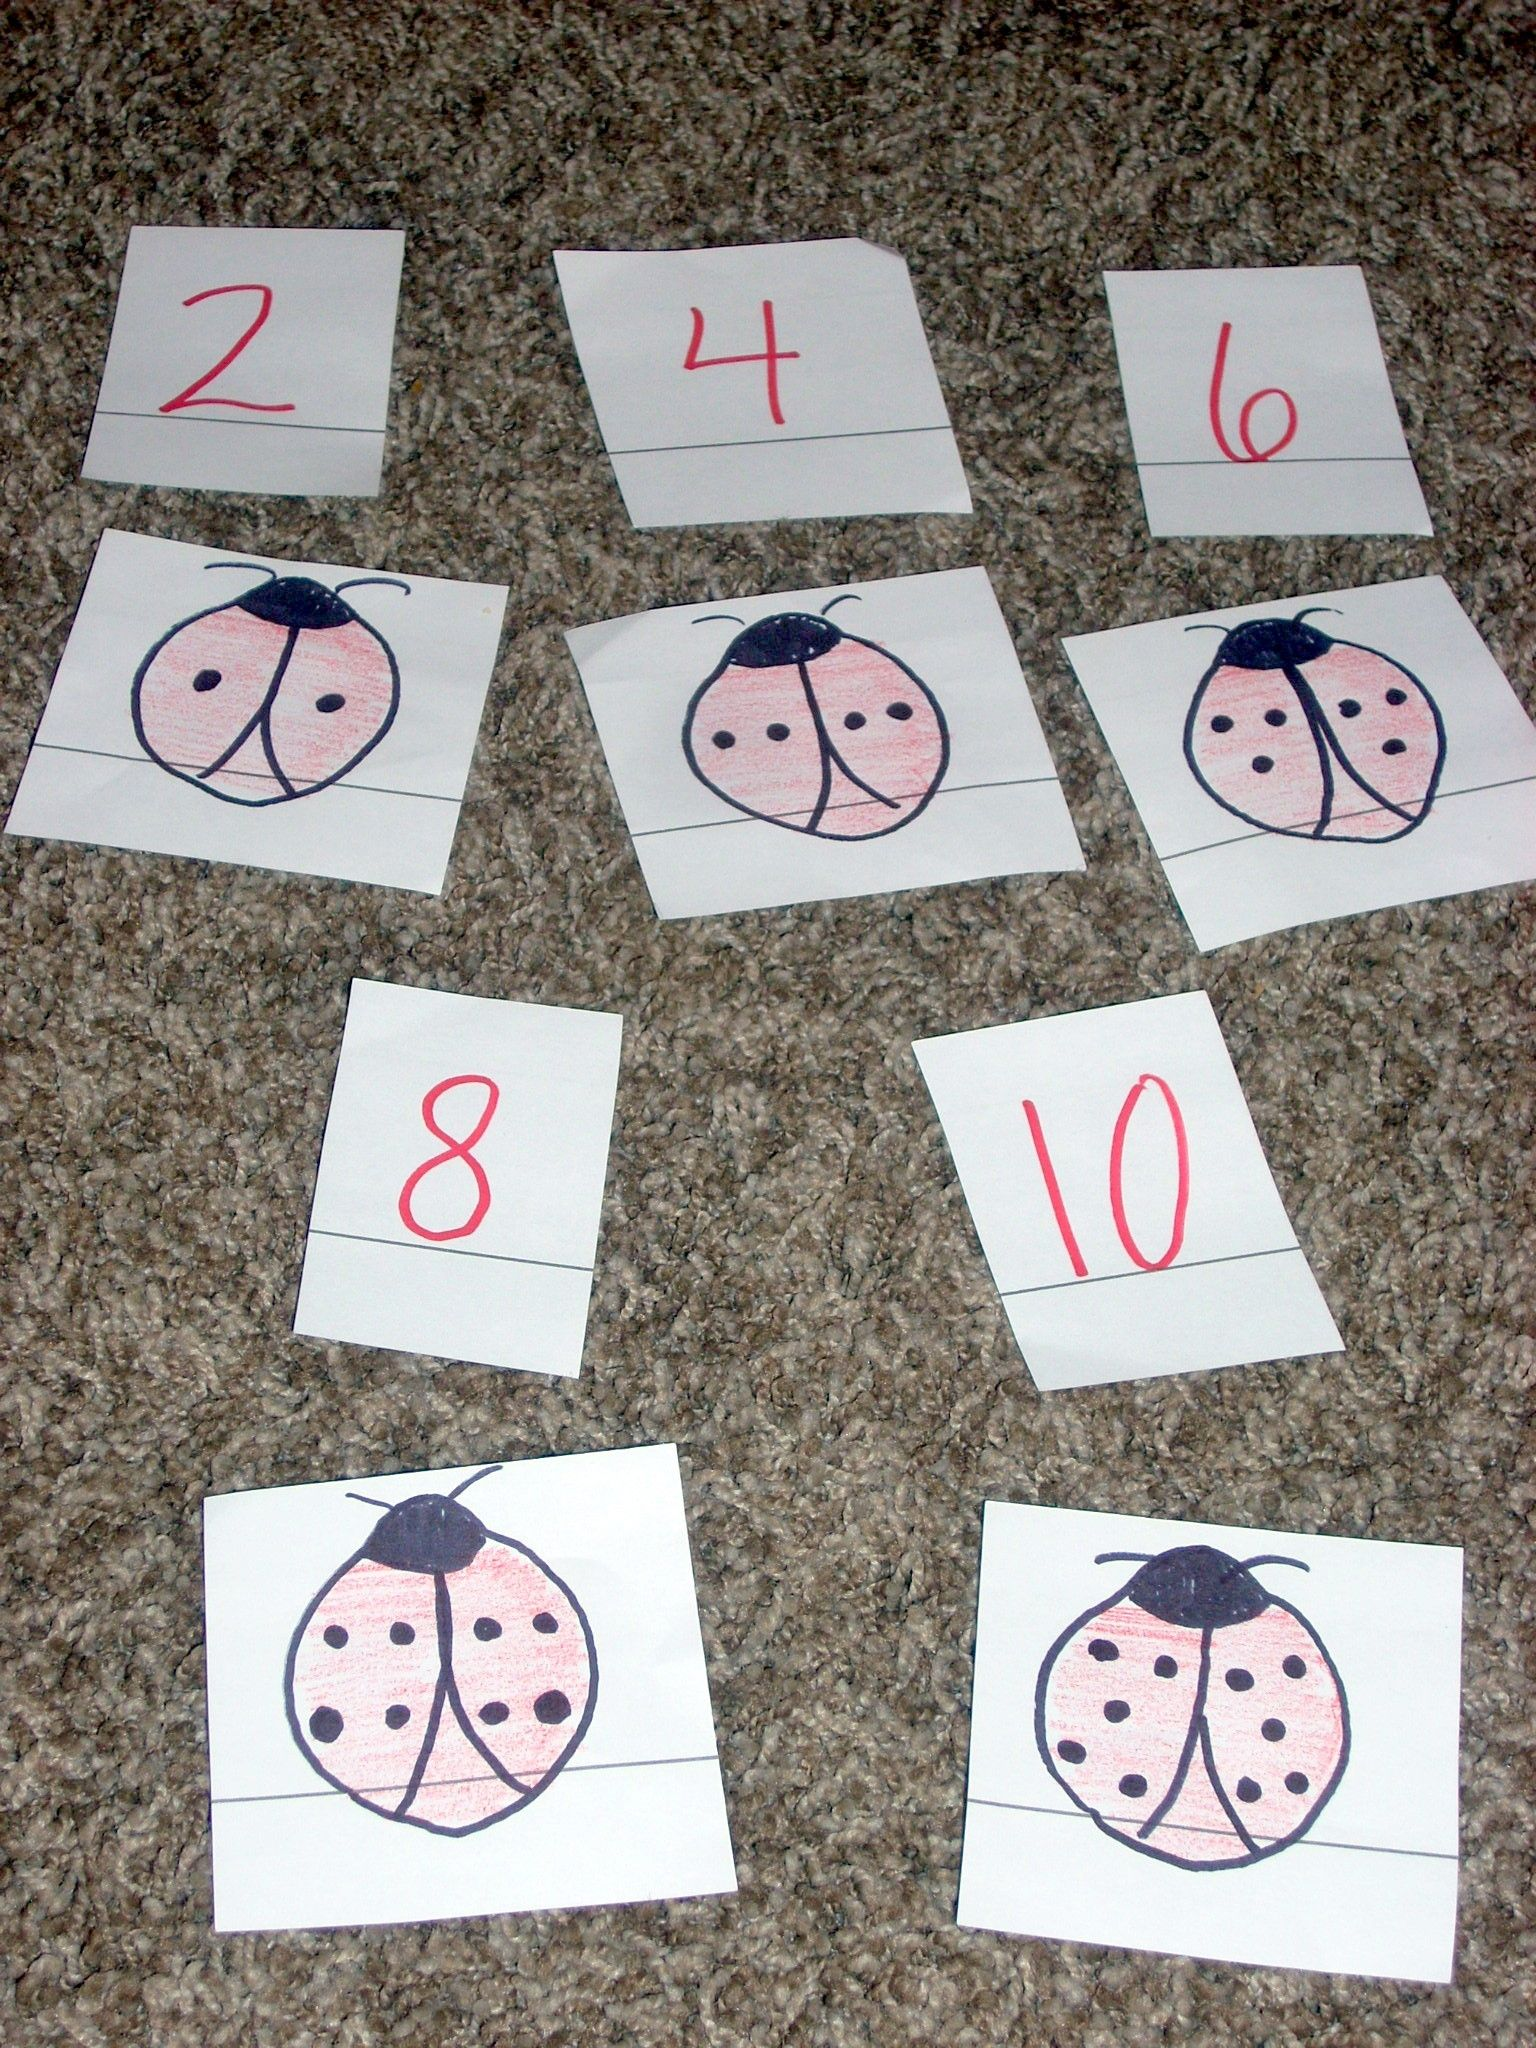 Counting Matching Activities For Ladybug Week